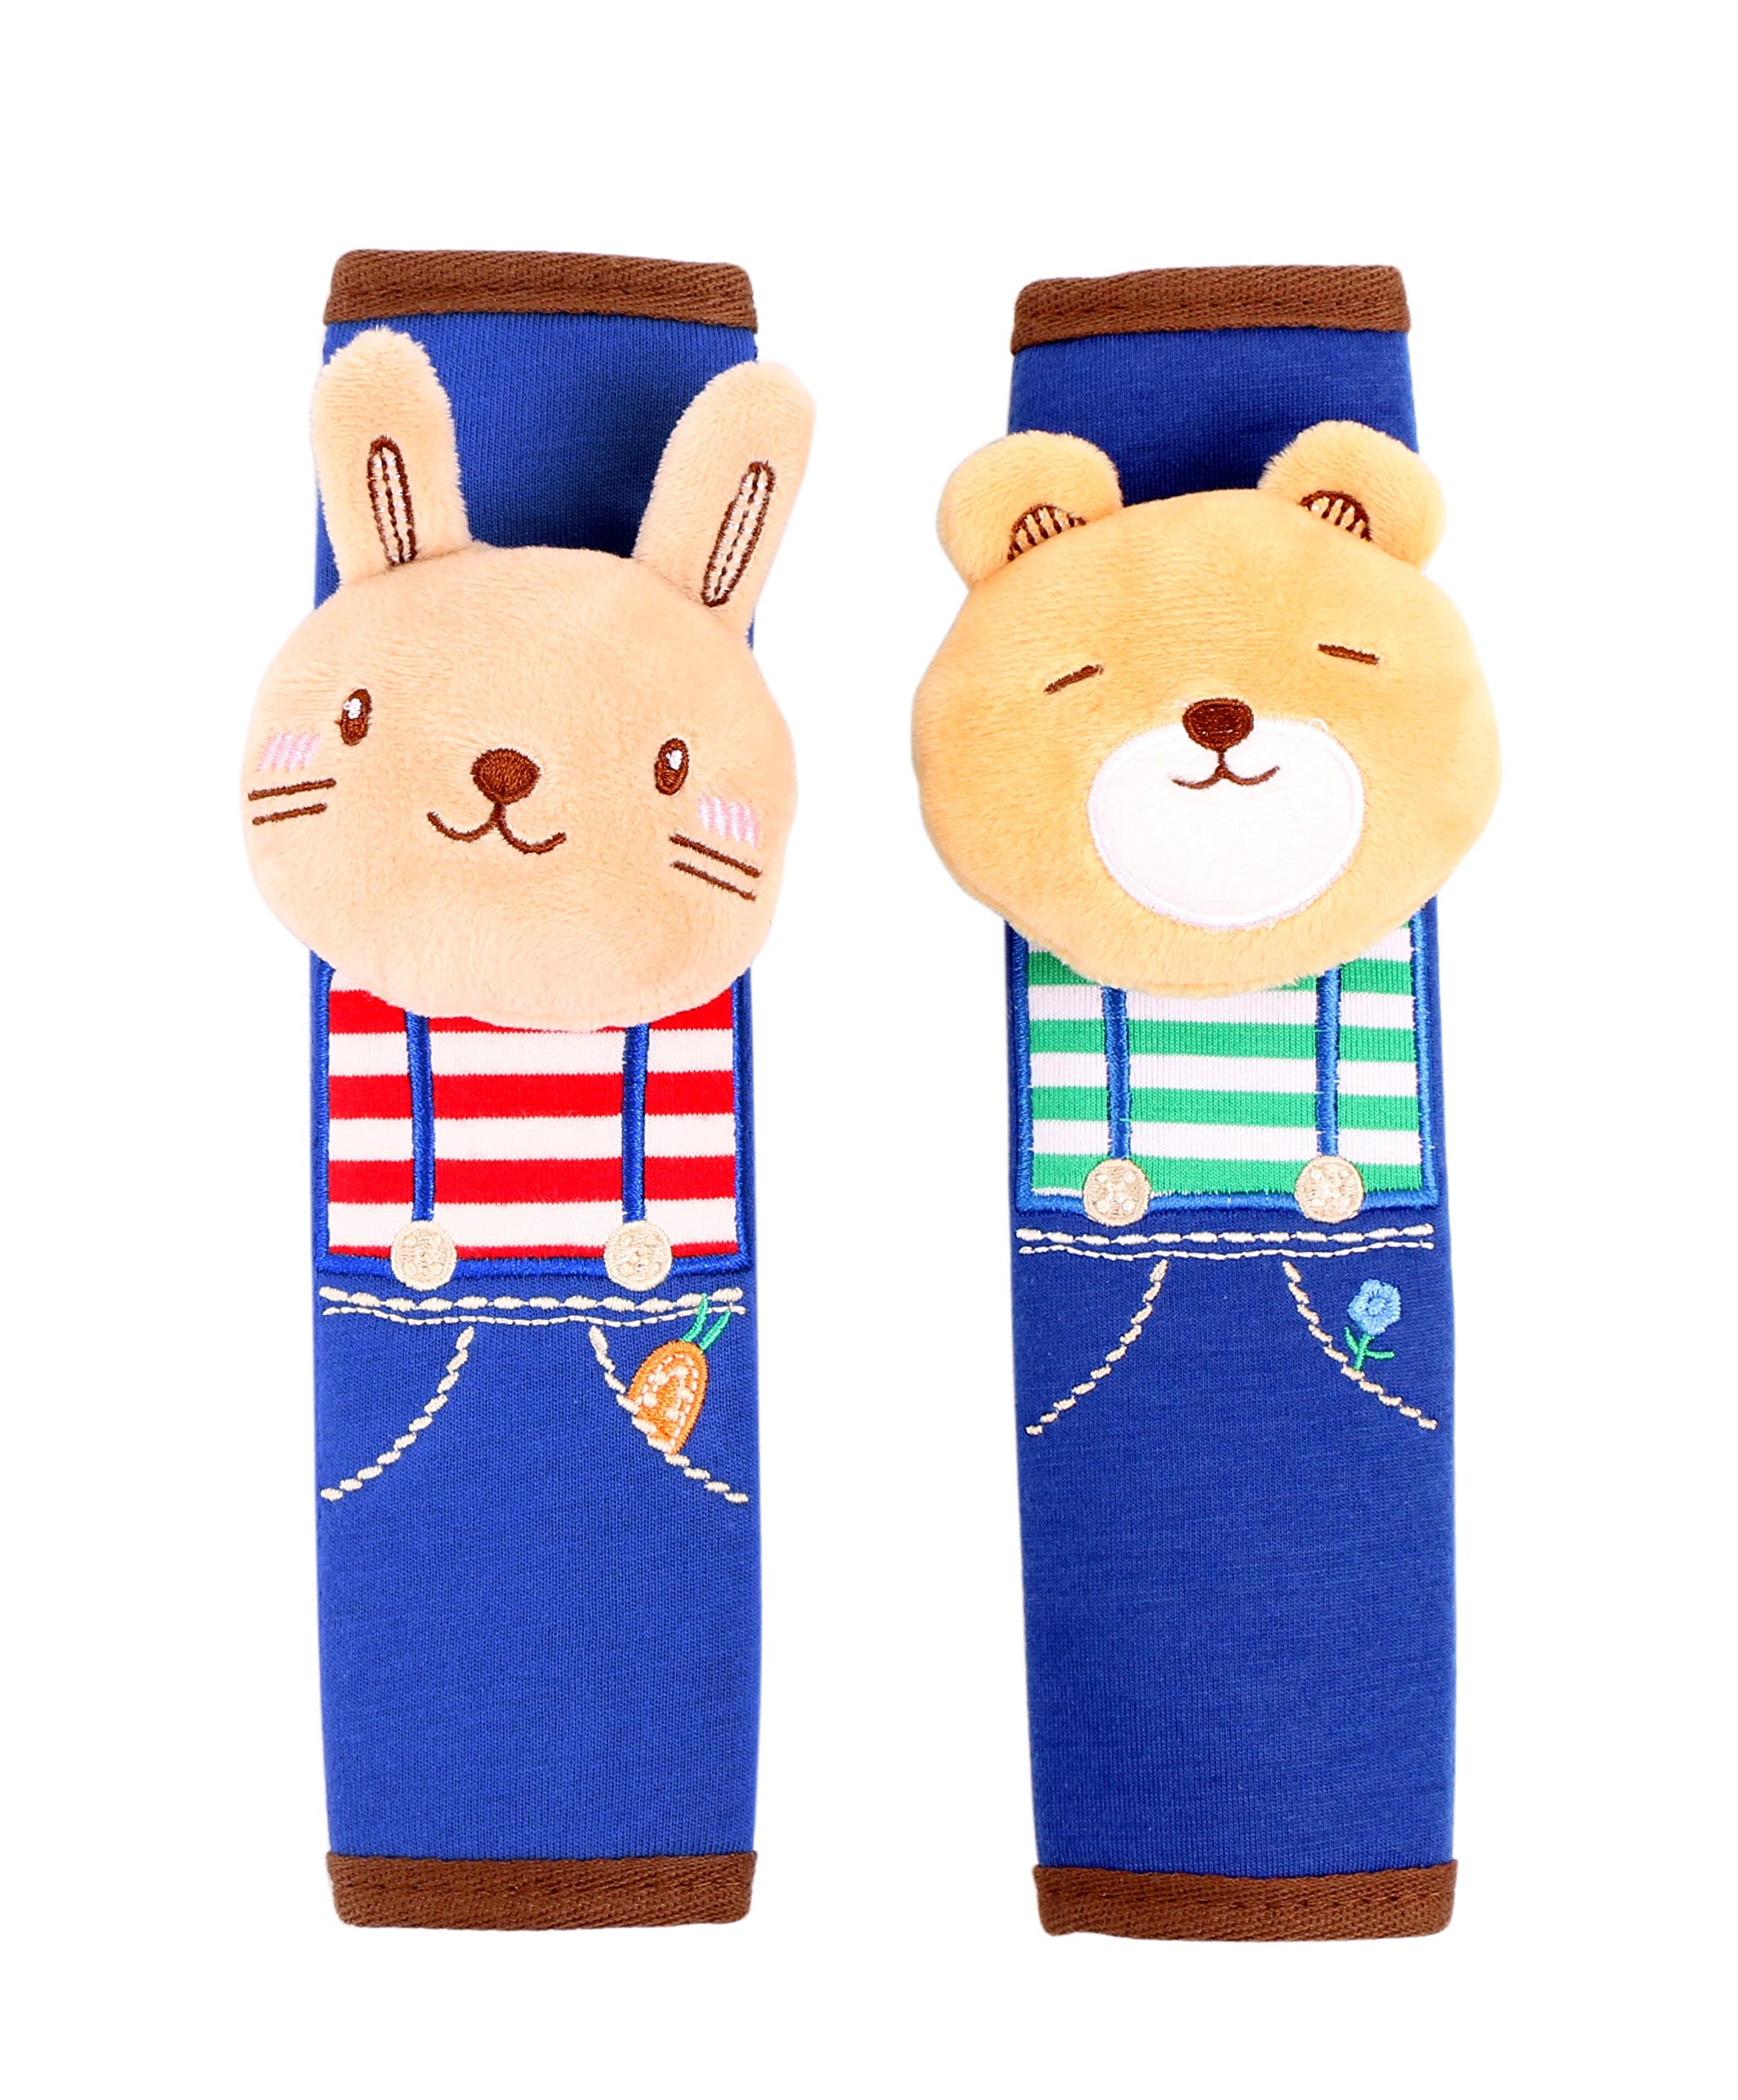 2 Packs of Bunny and Bear Children Kids Baby Strap Soft Headrest Neck Support Shoulder Pad Seat Belt Cover Cushion for Car